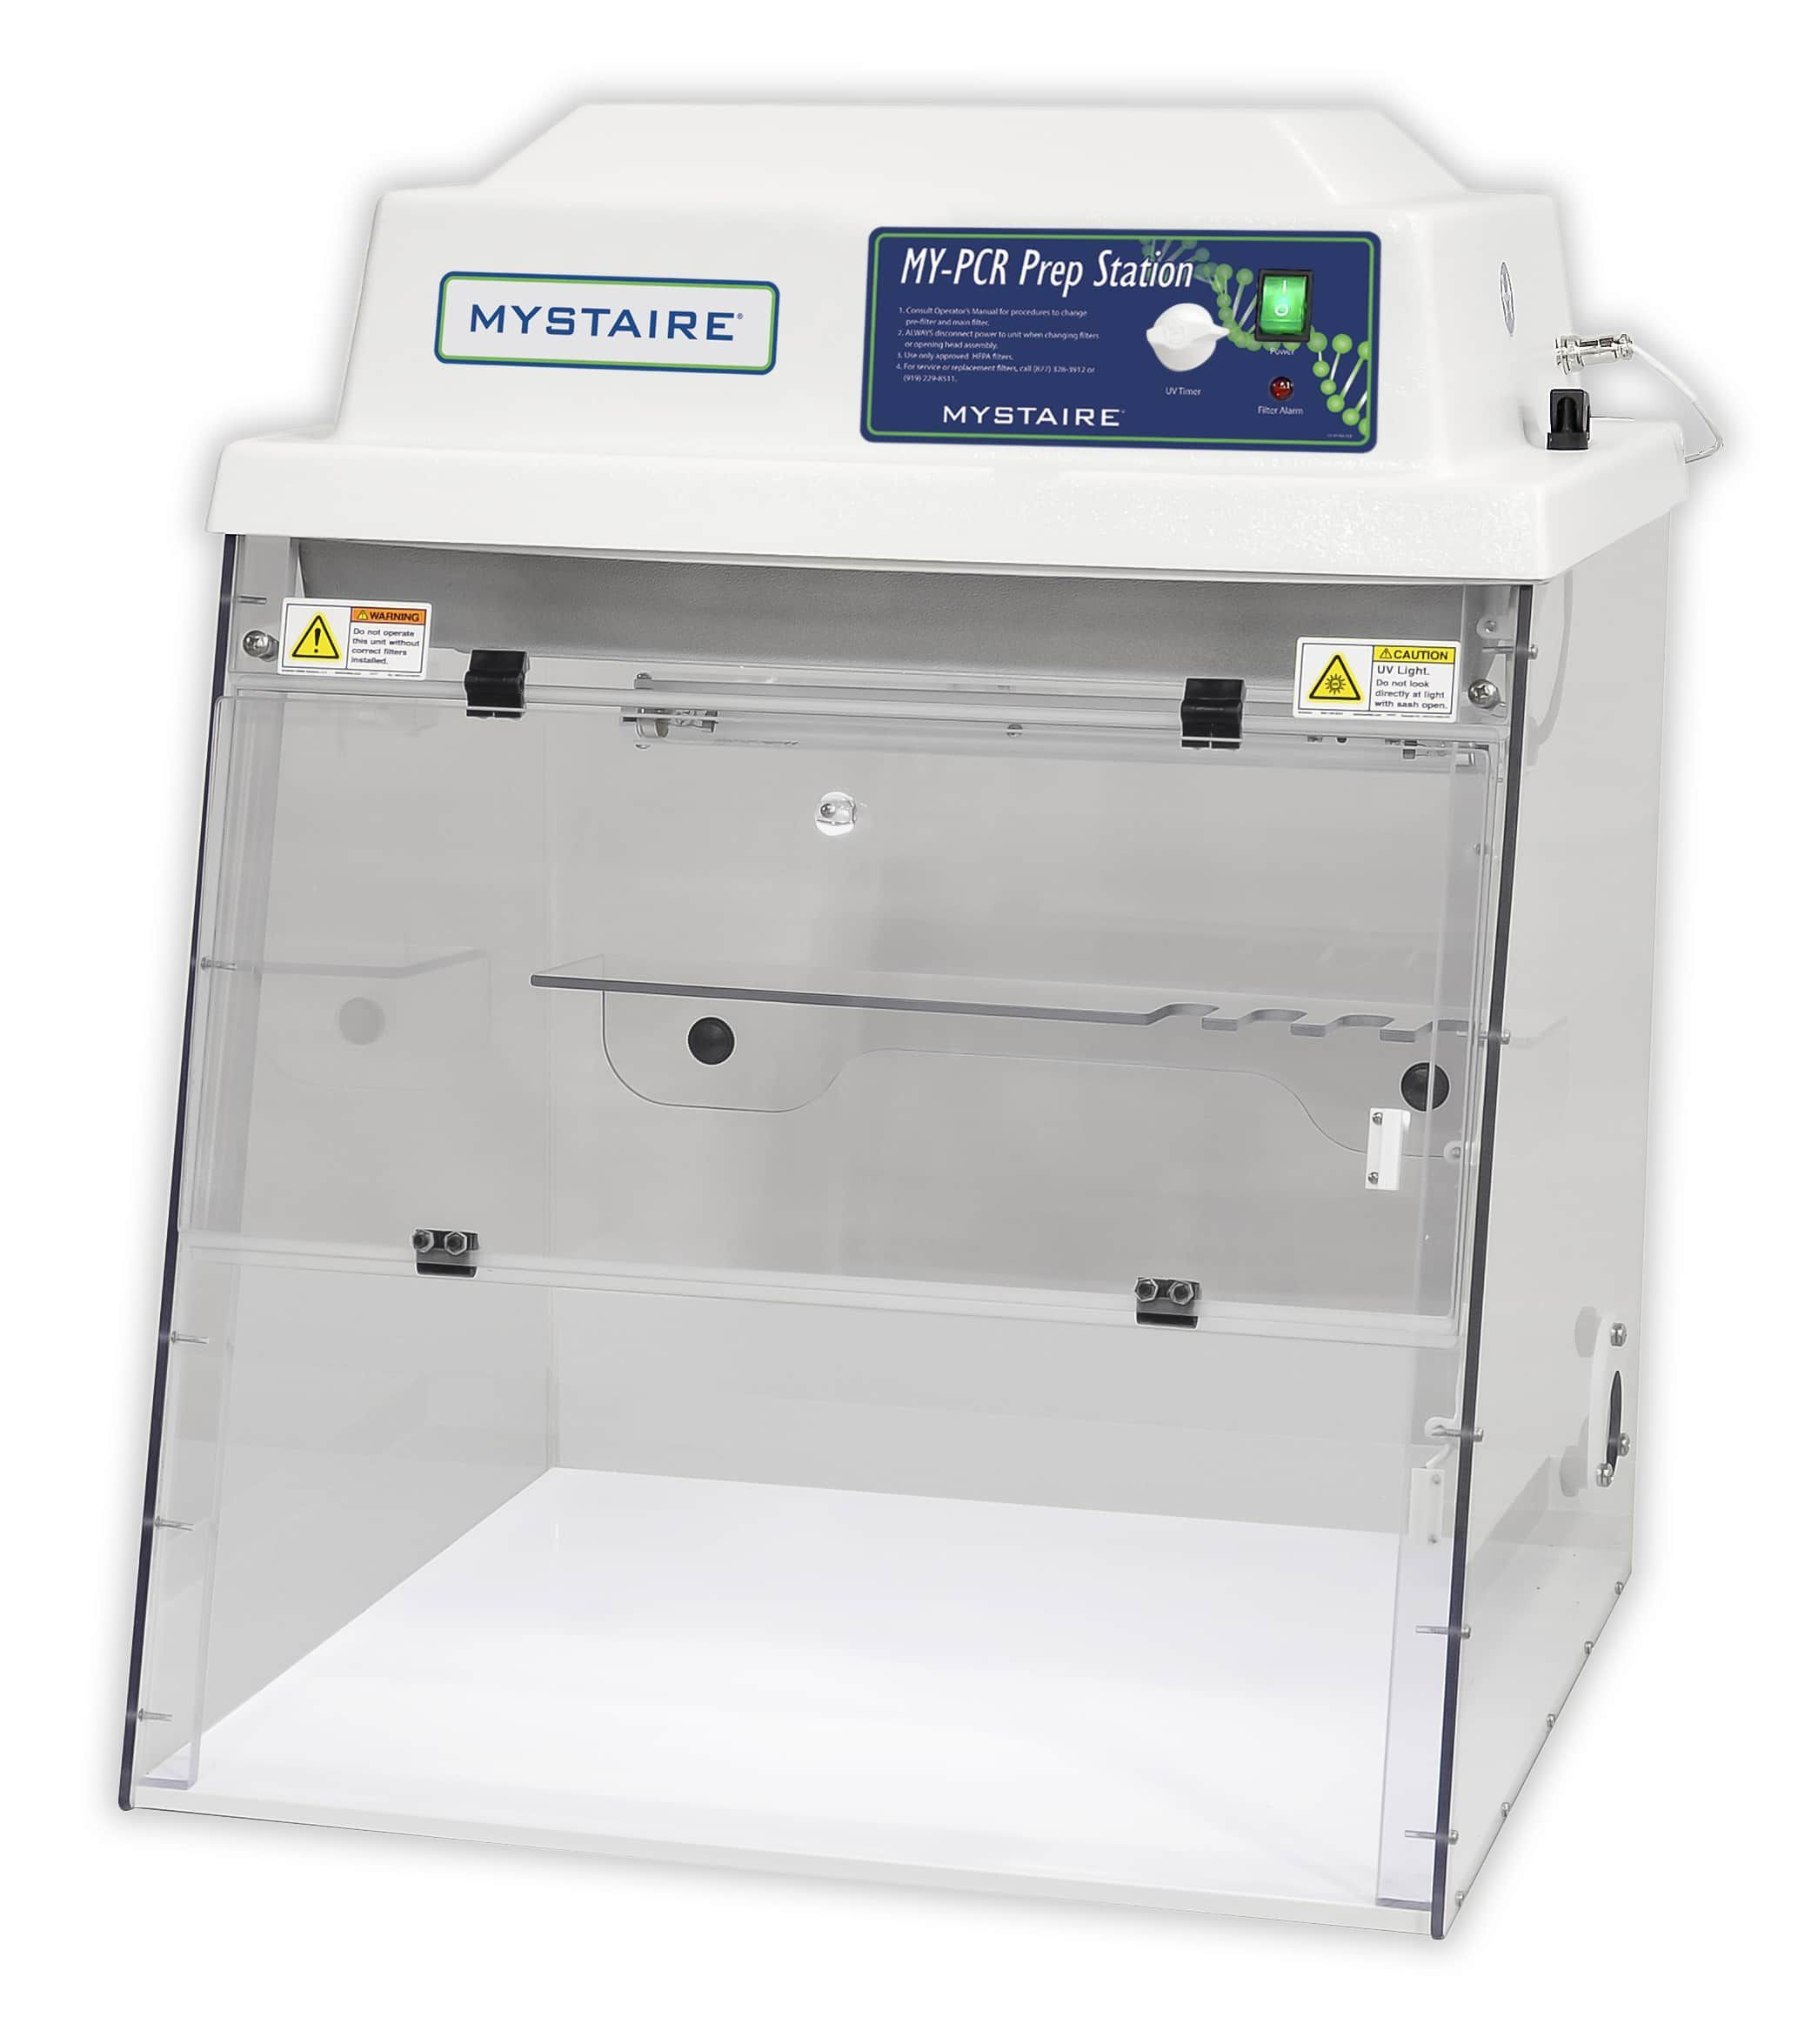 Mystaire MY-PCR Workstations